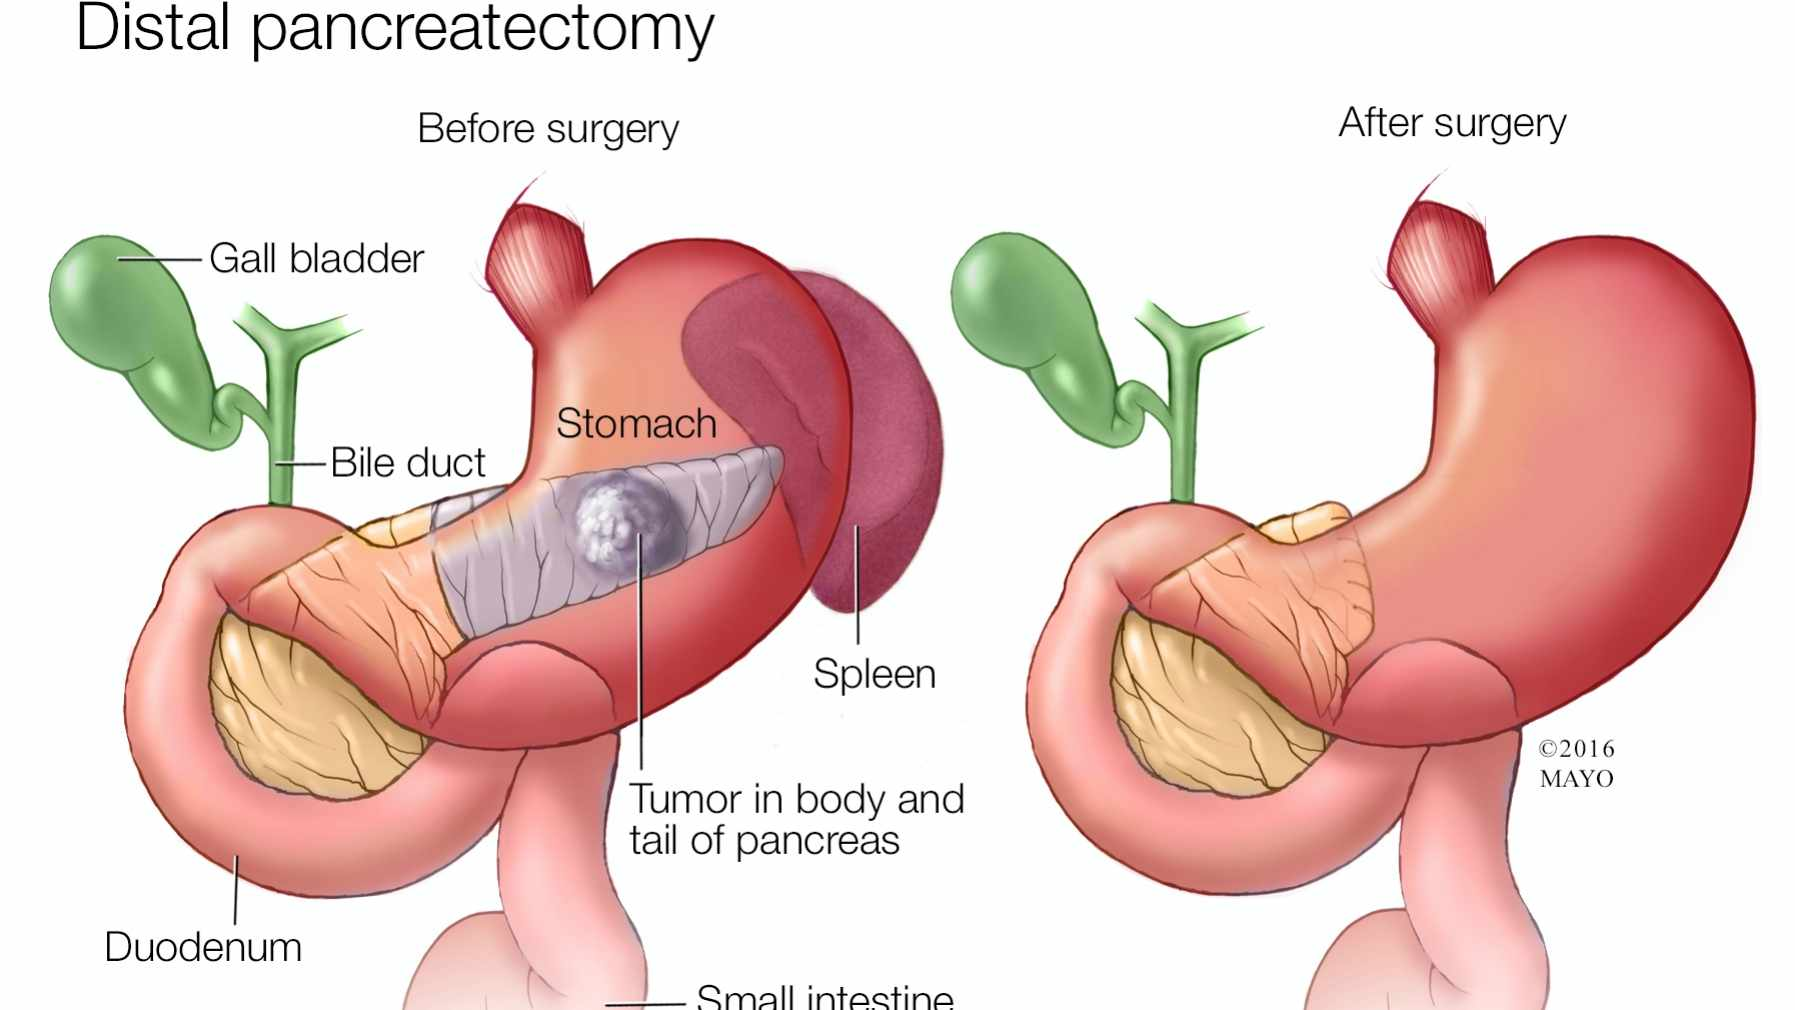 METABOLIC DISORDERS IN PATIENTS OPERATED FOR PANCREATIC CANCER